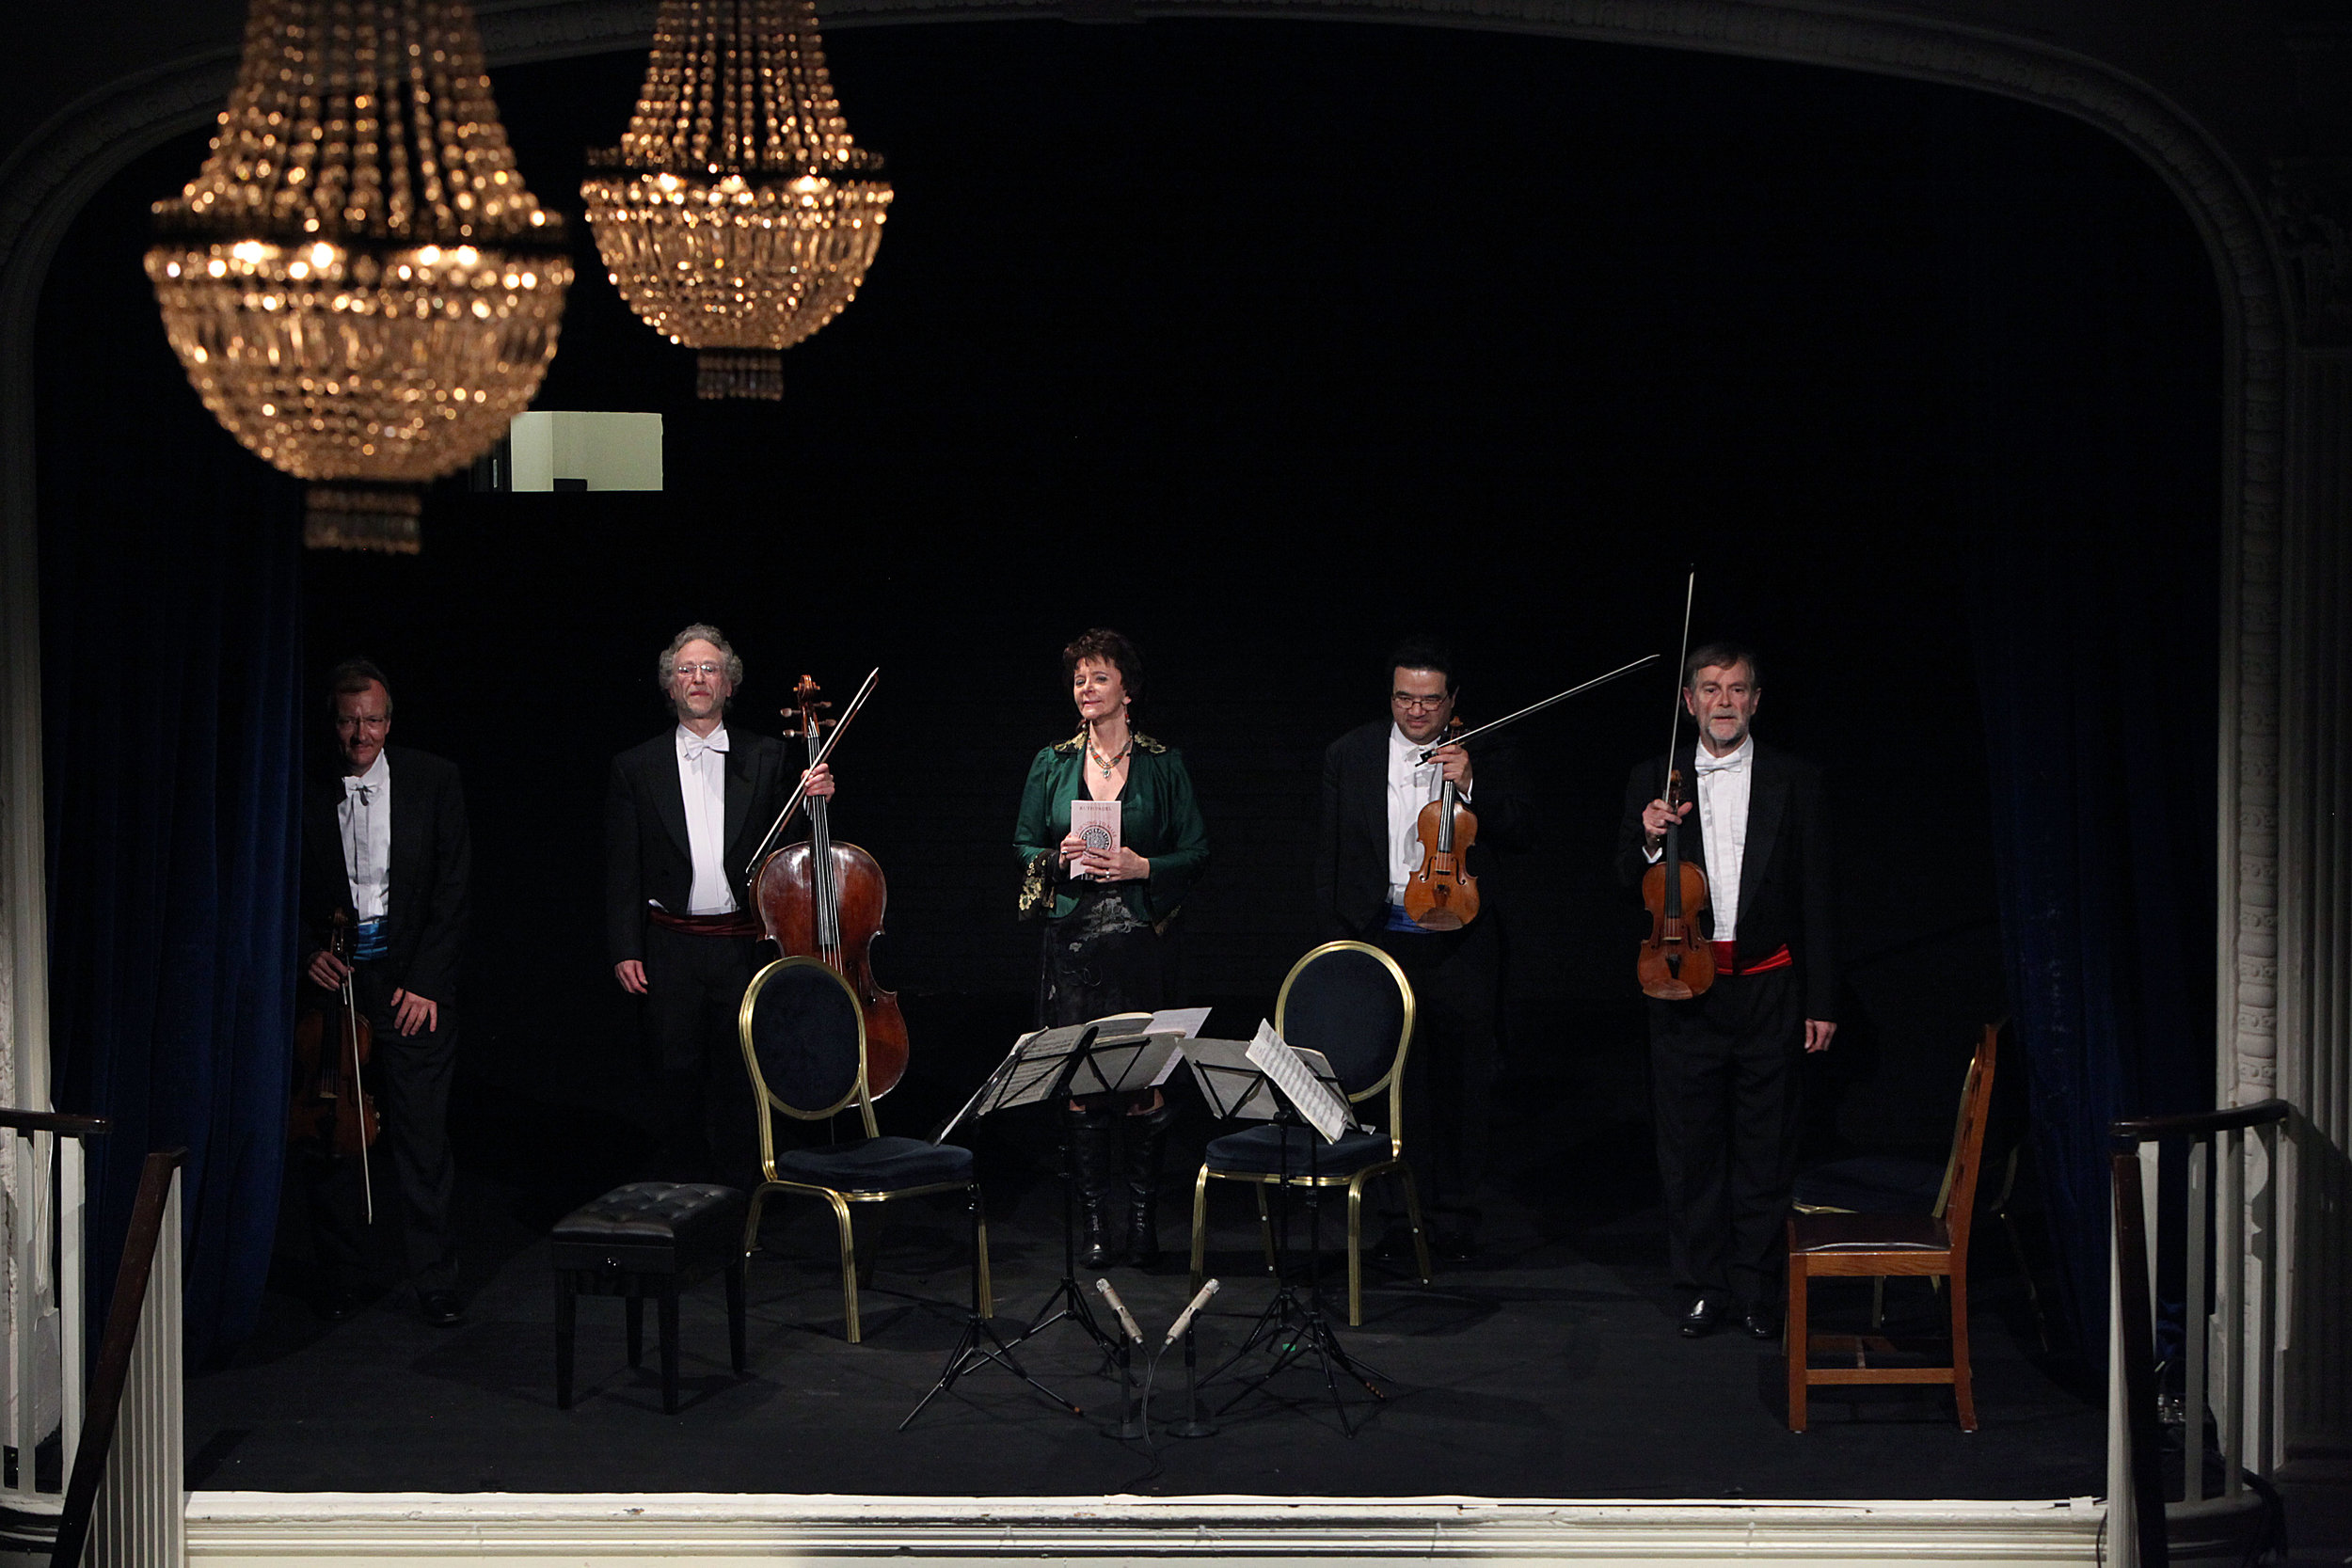 ENDELLION QUARTET. SEVEN LAST WORDS - march 26, 2014. 20th century theater, londonThe Endellion String QuartetHaydn 'Seven Last Words', Op. 51London Première of Poems by Ruth Padel'Seven Words and an Earthquake'